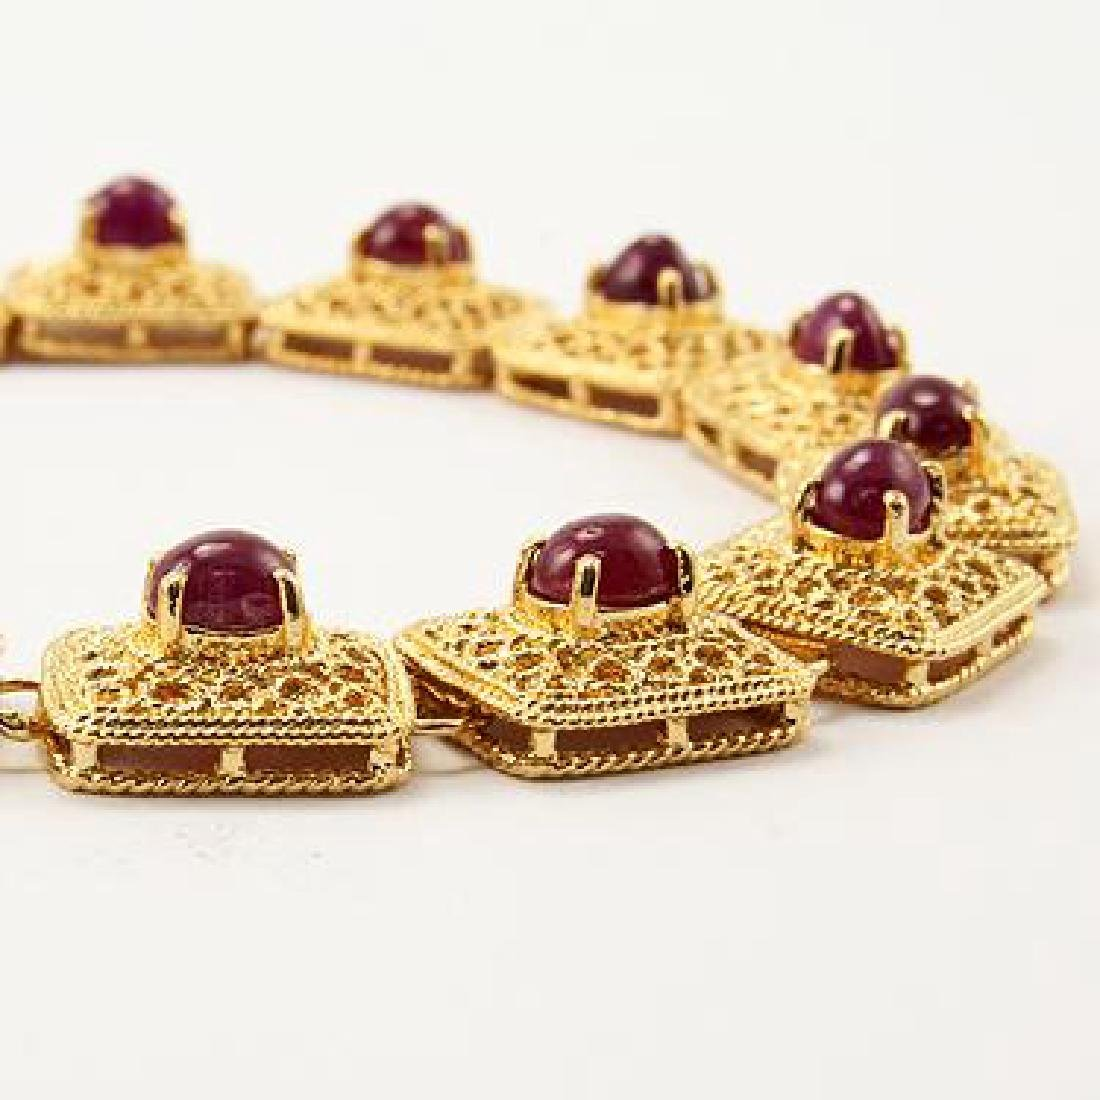 7 CT Cabochon Ruby Gold Bracelet - 2